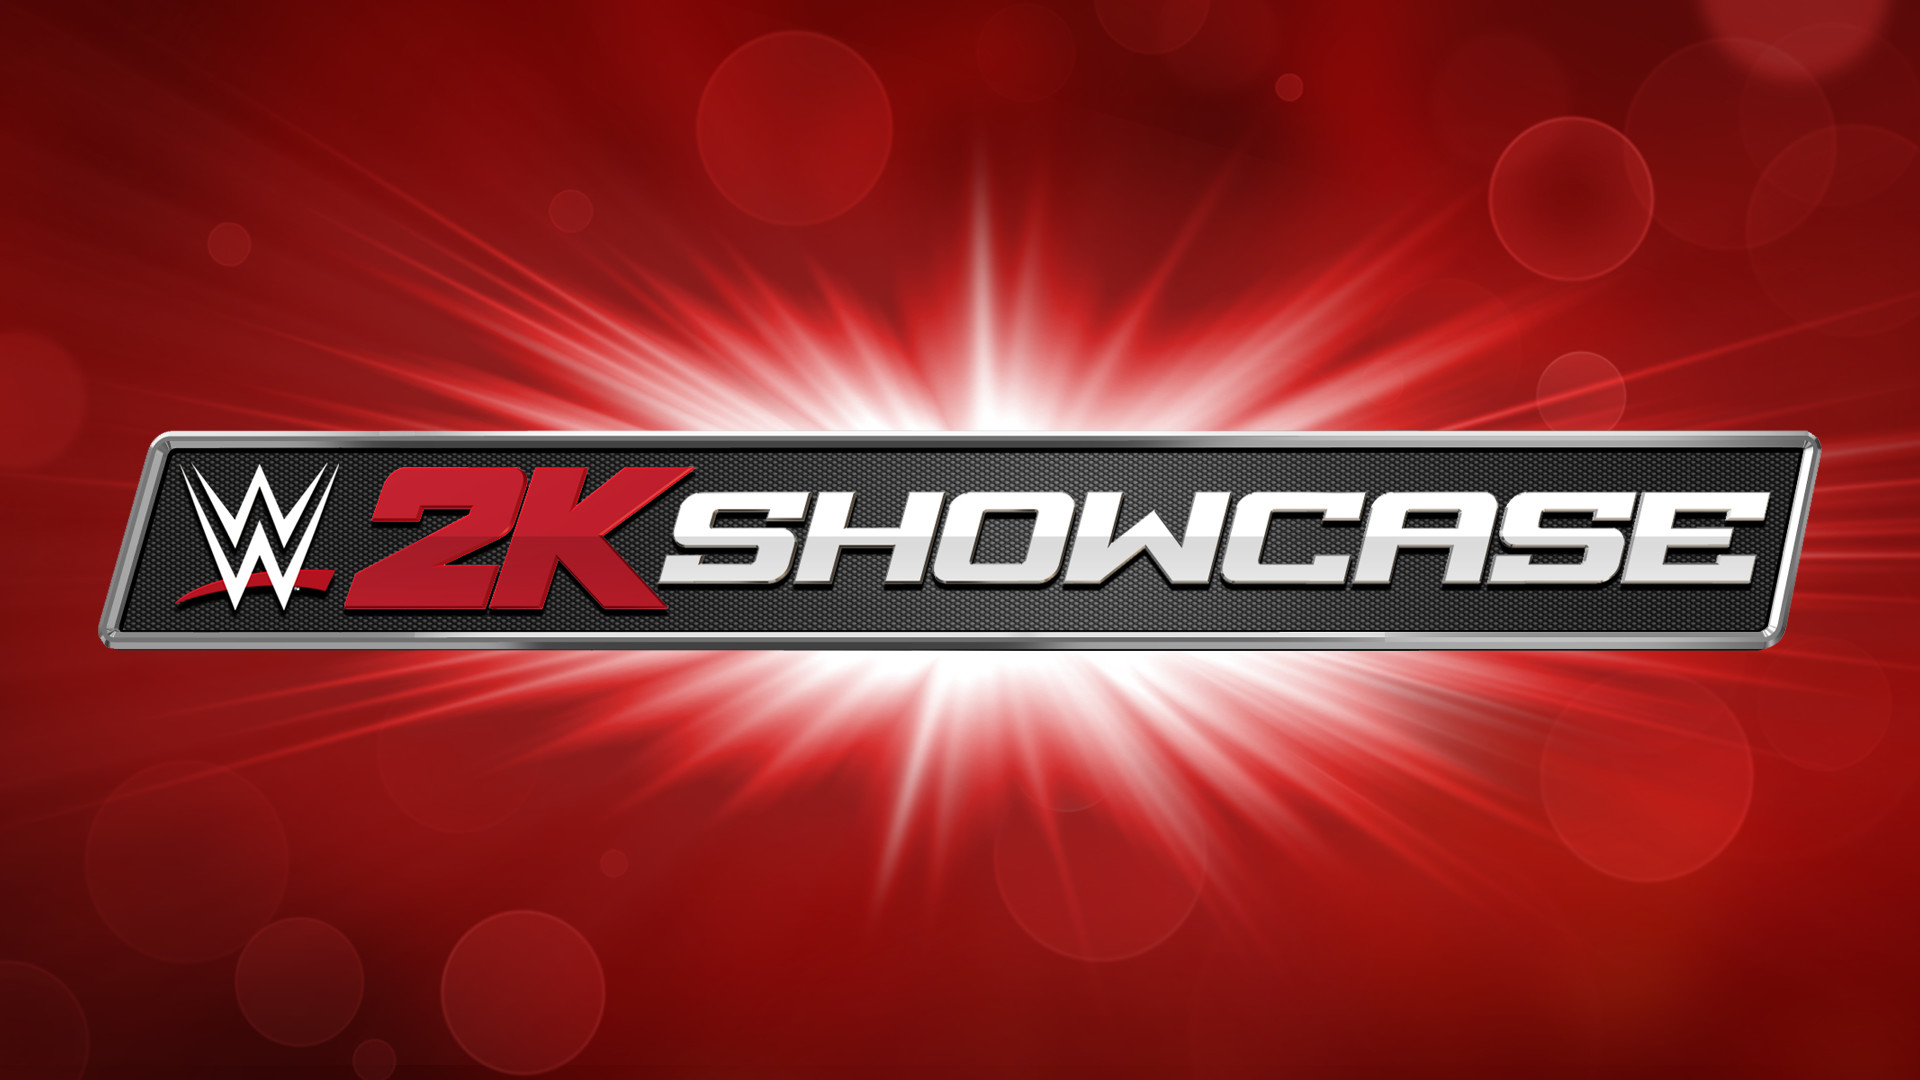 Res: 1920x1080, WWE2K15 Wallpaper 2KShowcase